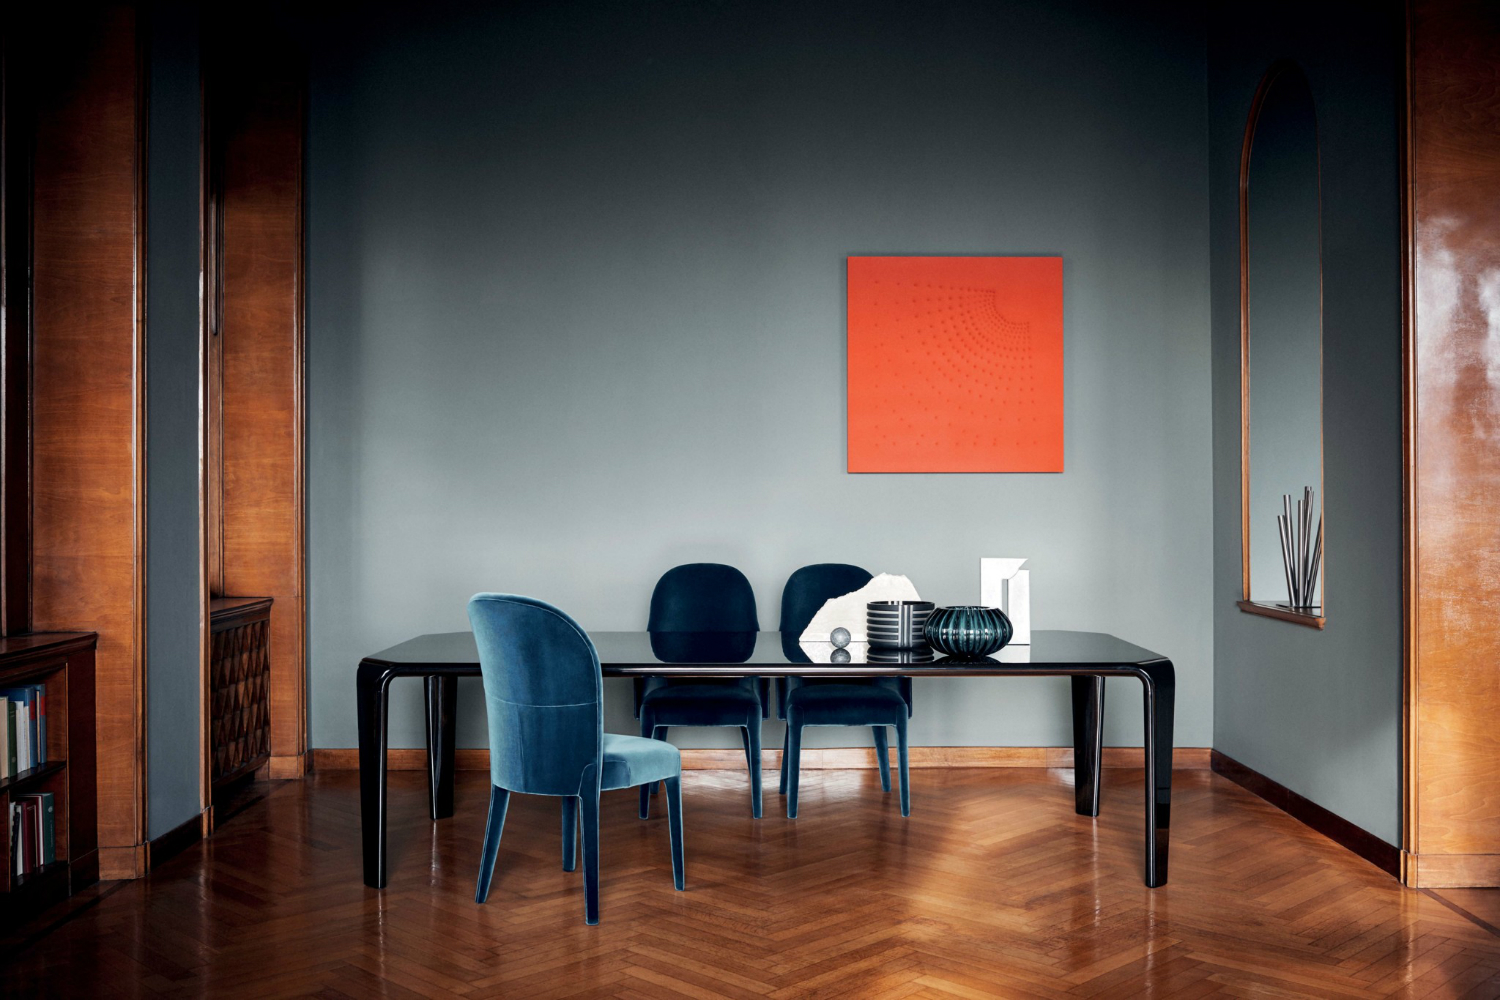 10 Best Modern Dining Chairs For Your Astonishing Home Design,Elements Of Art Design Worksheet